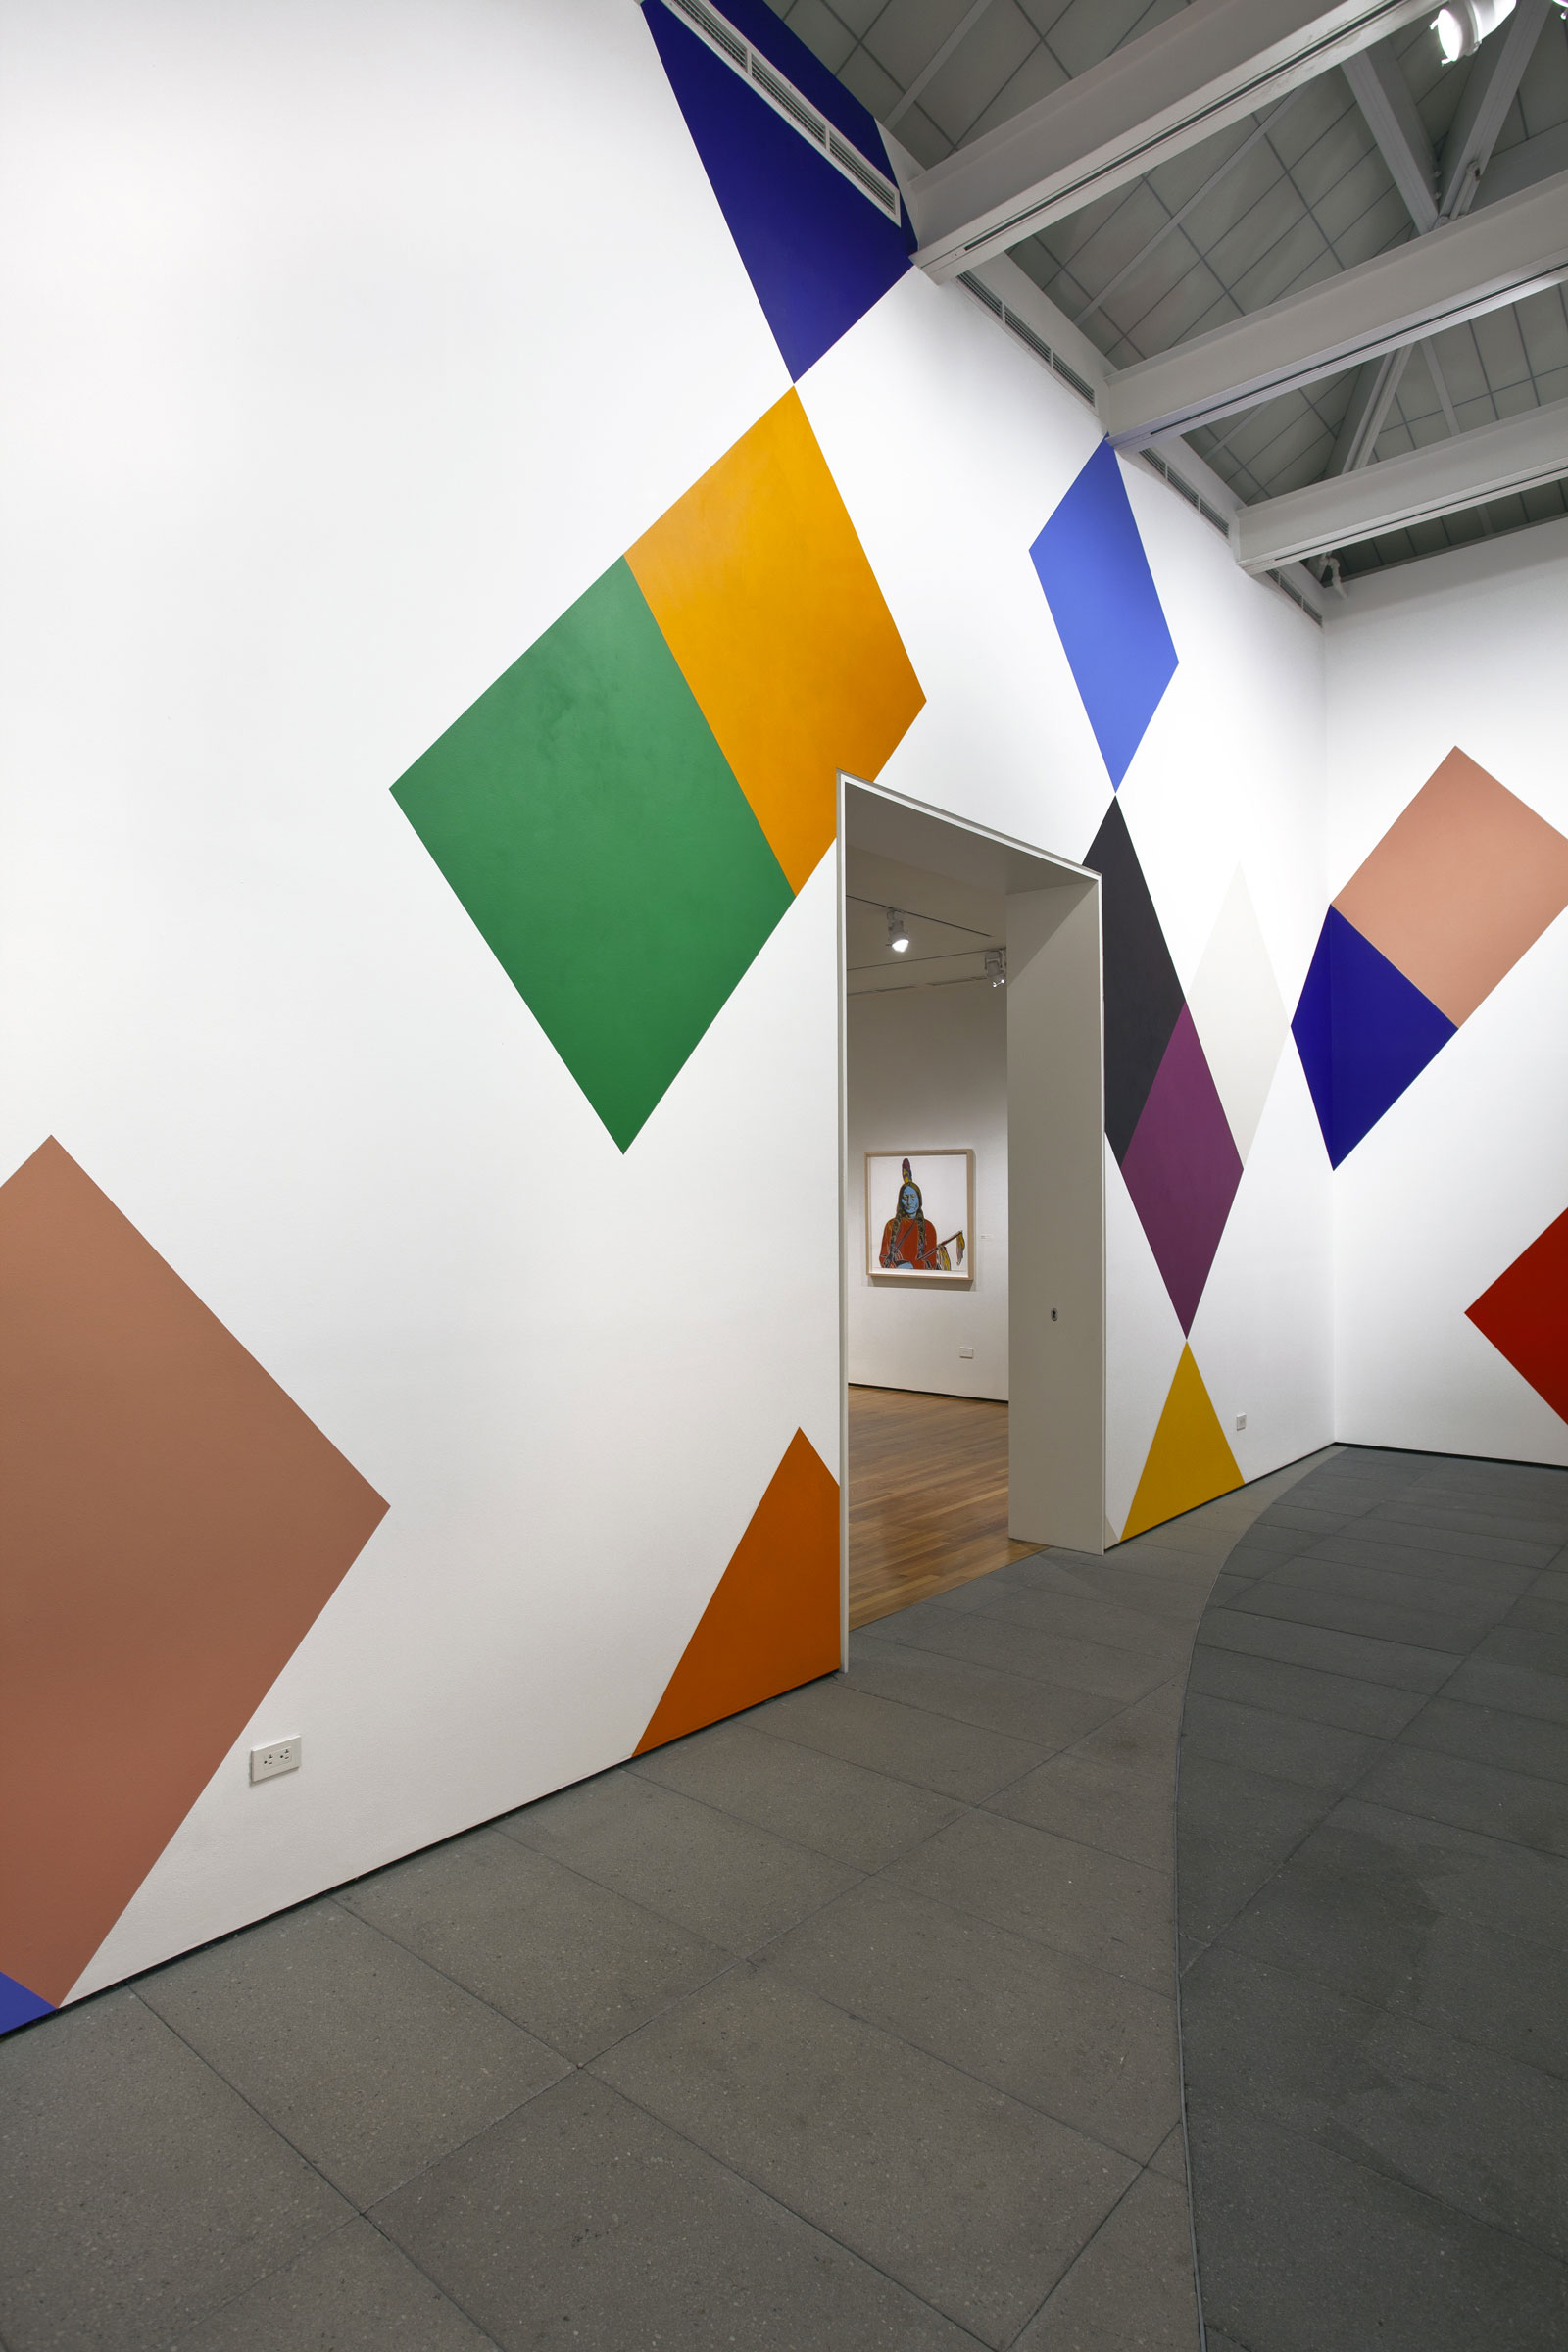 """Stars and Candywrappers , 2015, 18'6"""" x 100', wall painting installed on all four walls of the Nachman Gallery, Museum of Art, Design and Architecture,University of California Santa Barbara.On view September 25, 2015-May 1, 2016."""